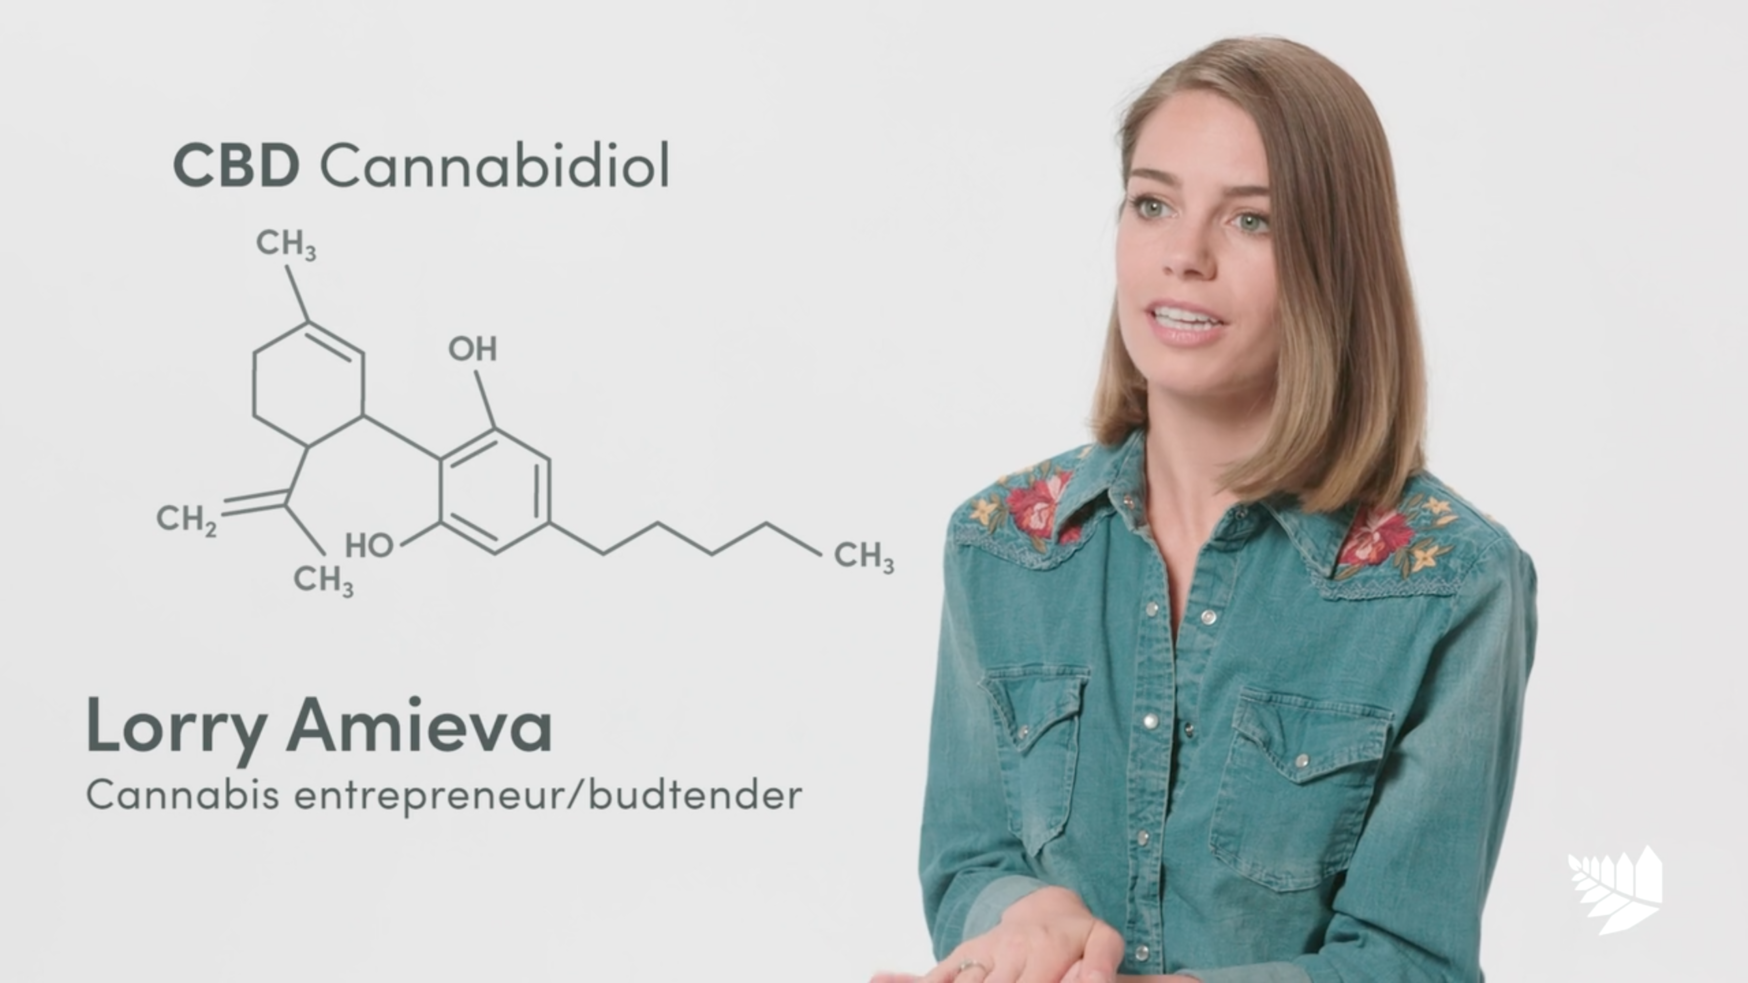 Flowertown explains Cannabidiol aka CBD